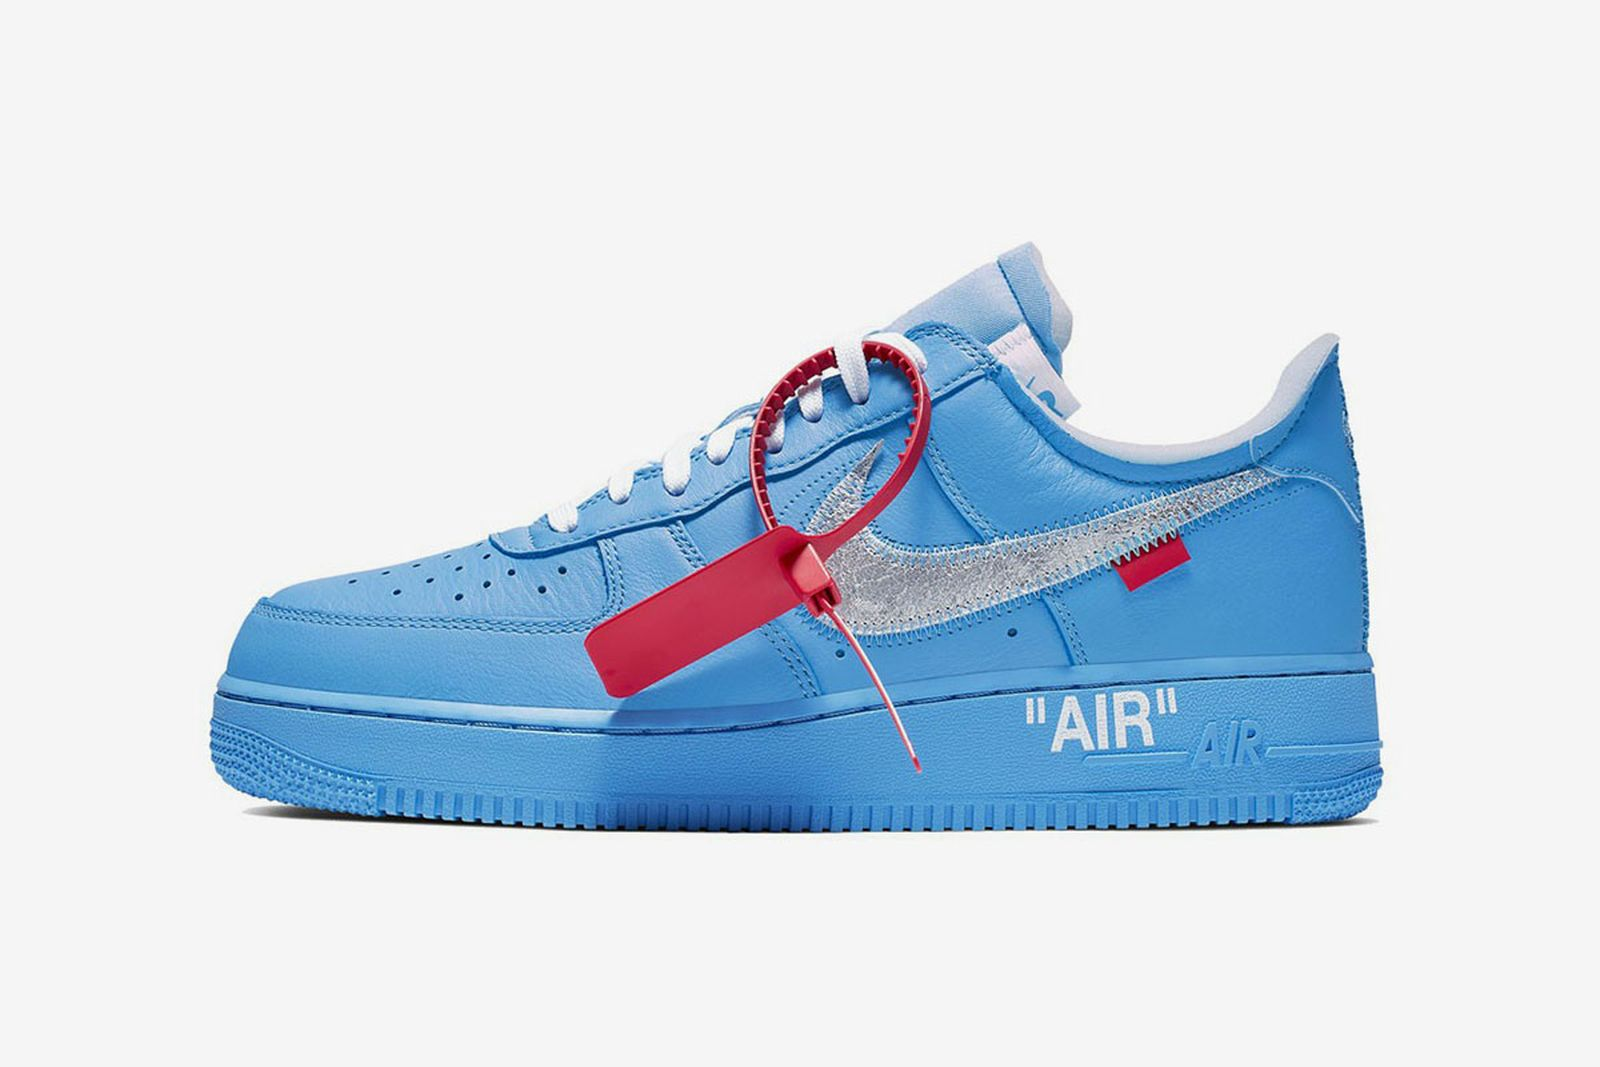 off white nike air force 1 mca chicago release date price OFF-WHITE c/o Virgil Abloh